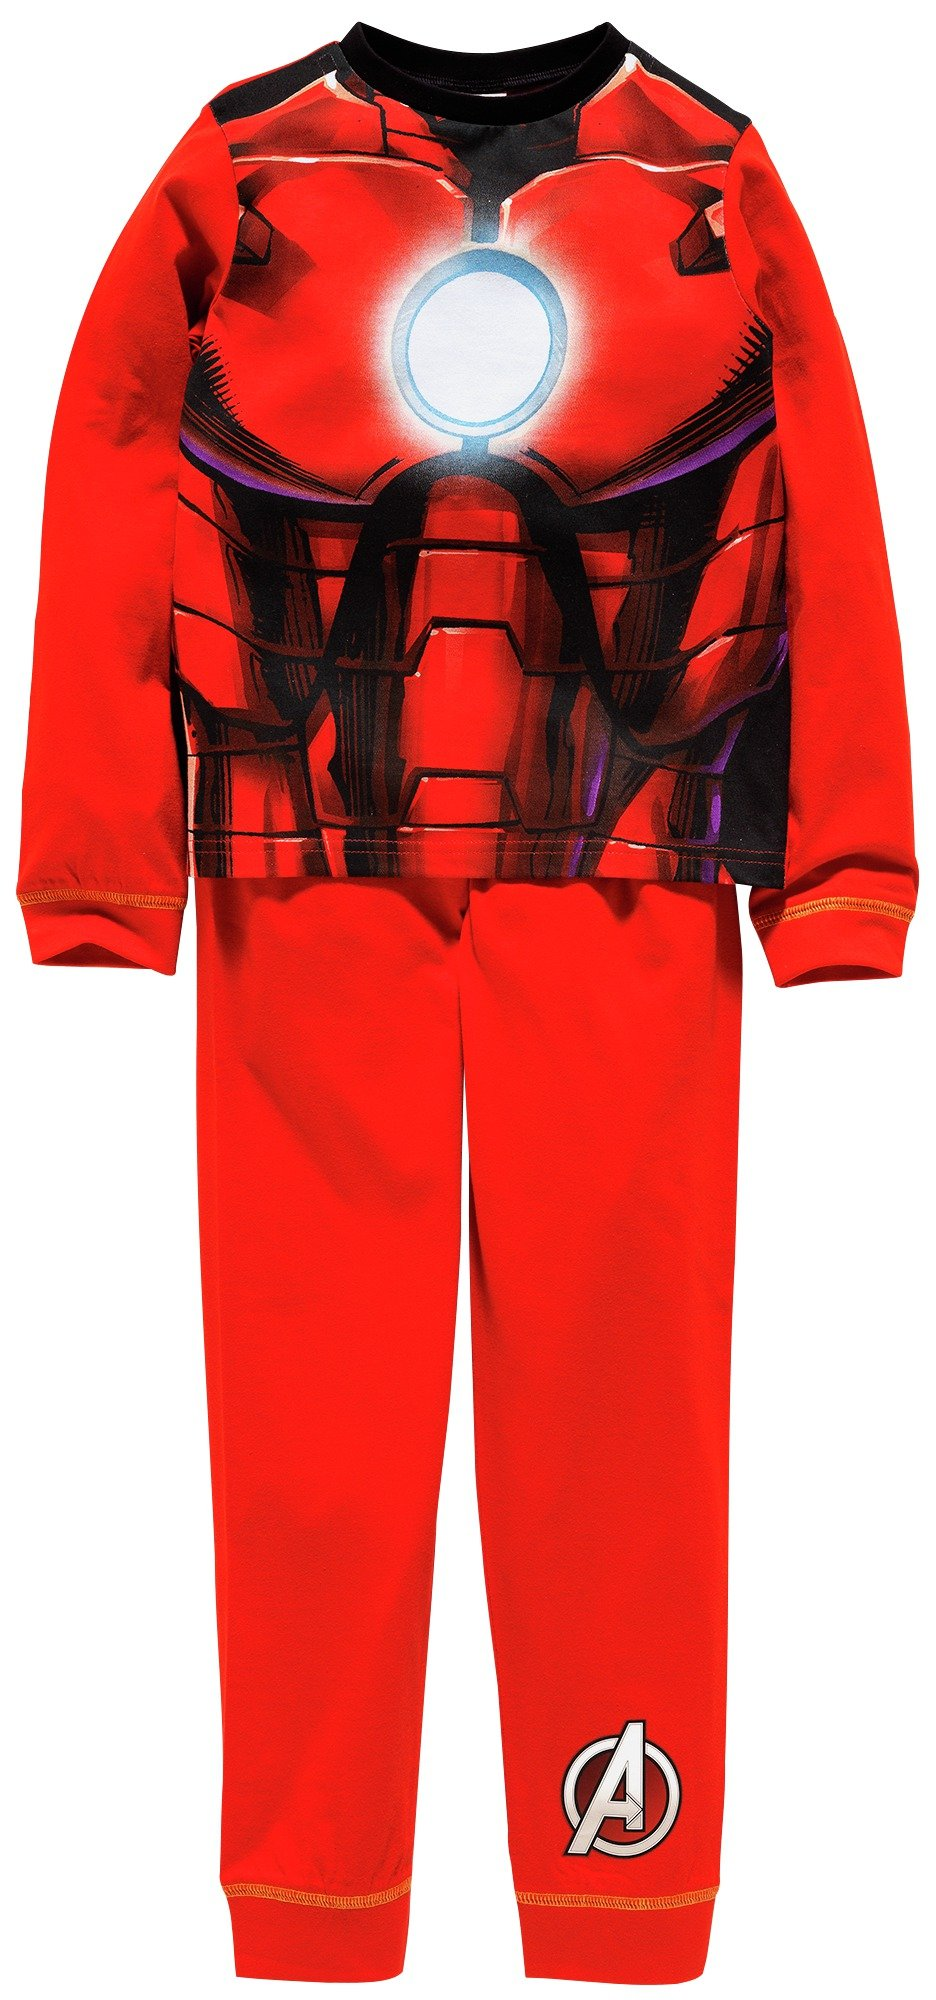 Image of Iron Man Novelty Pyjamas - 3-4 Years.